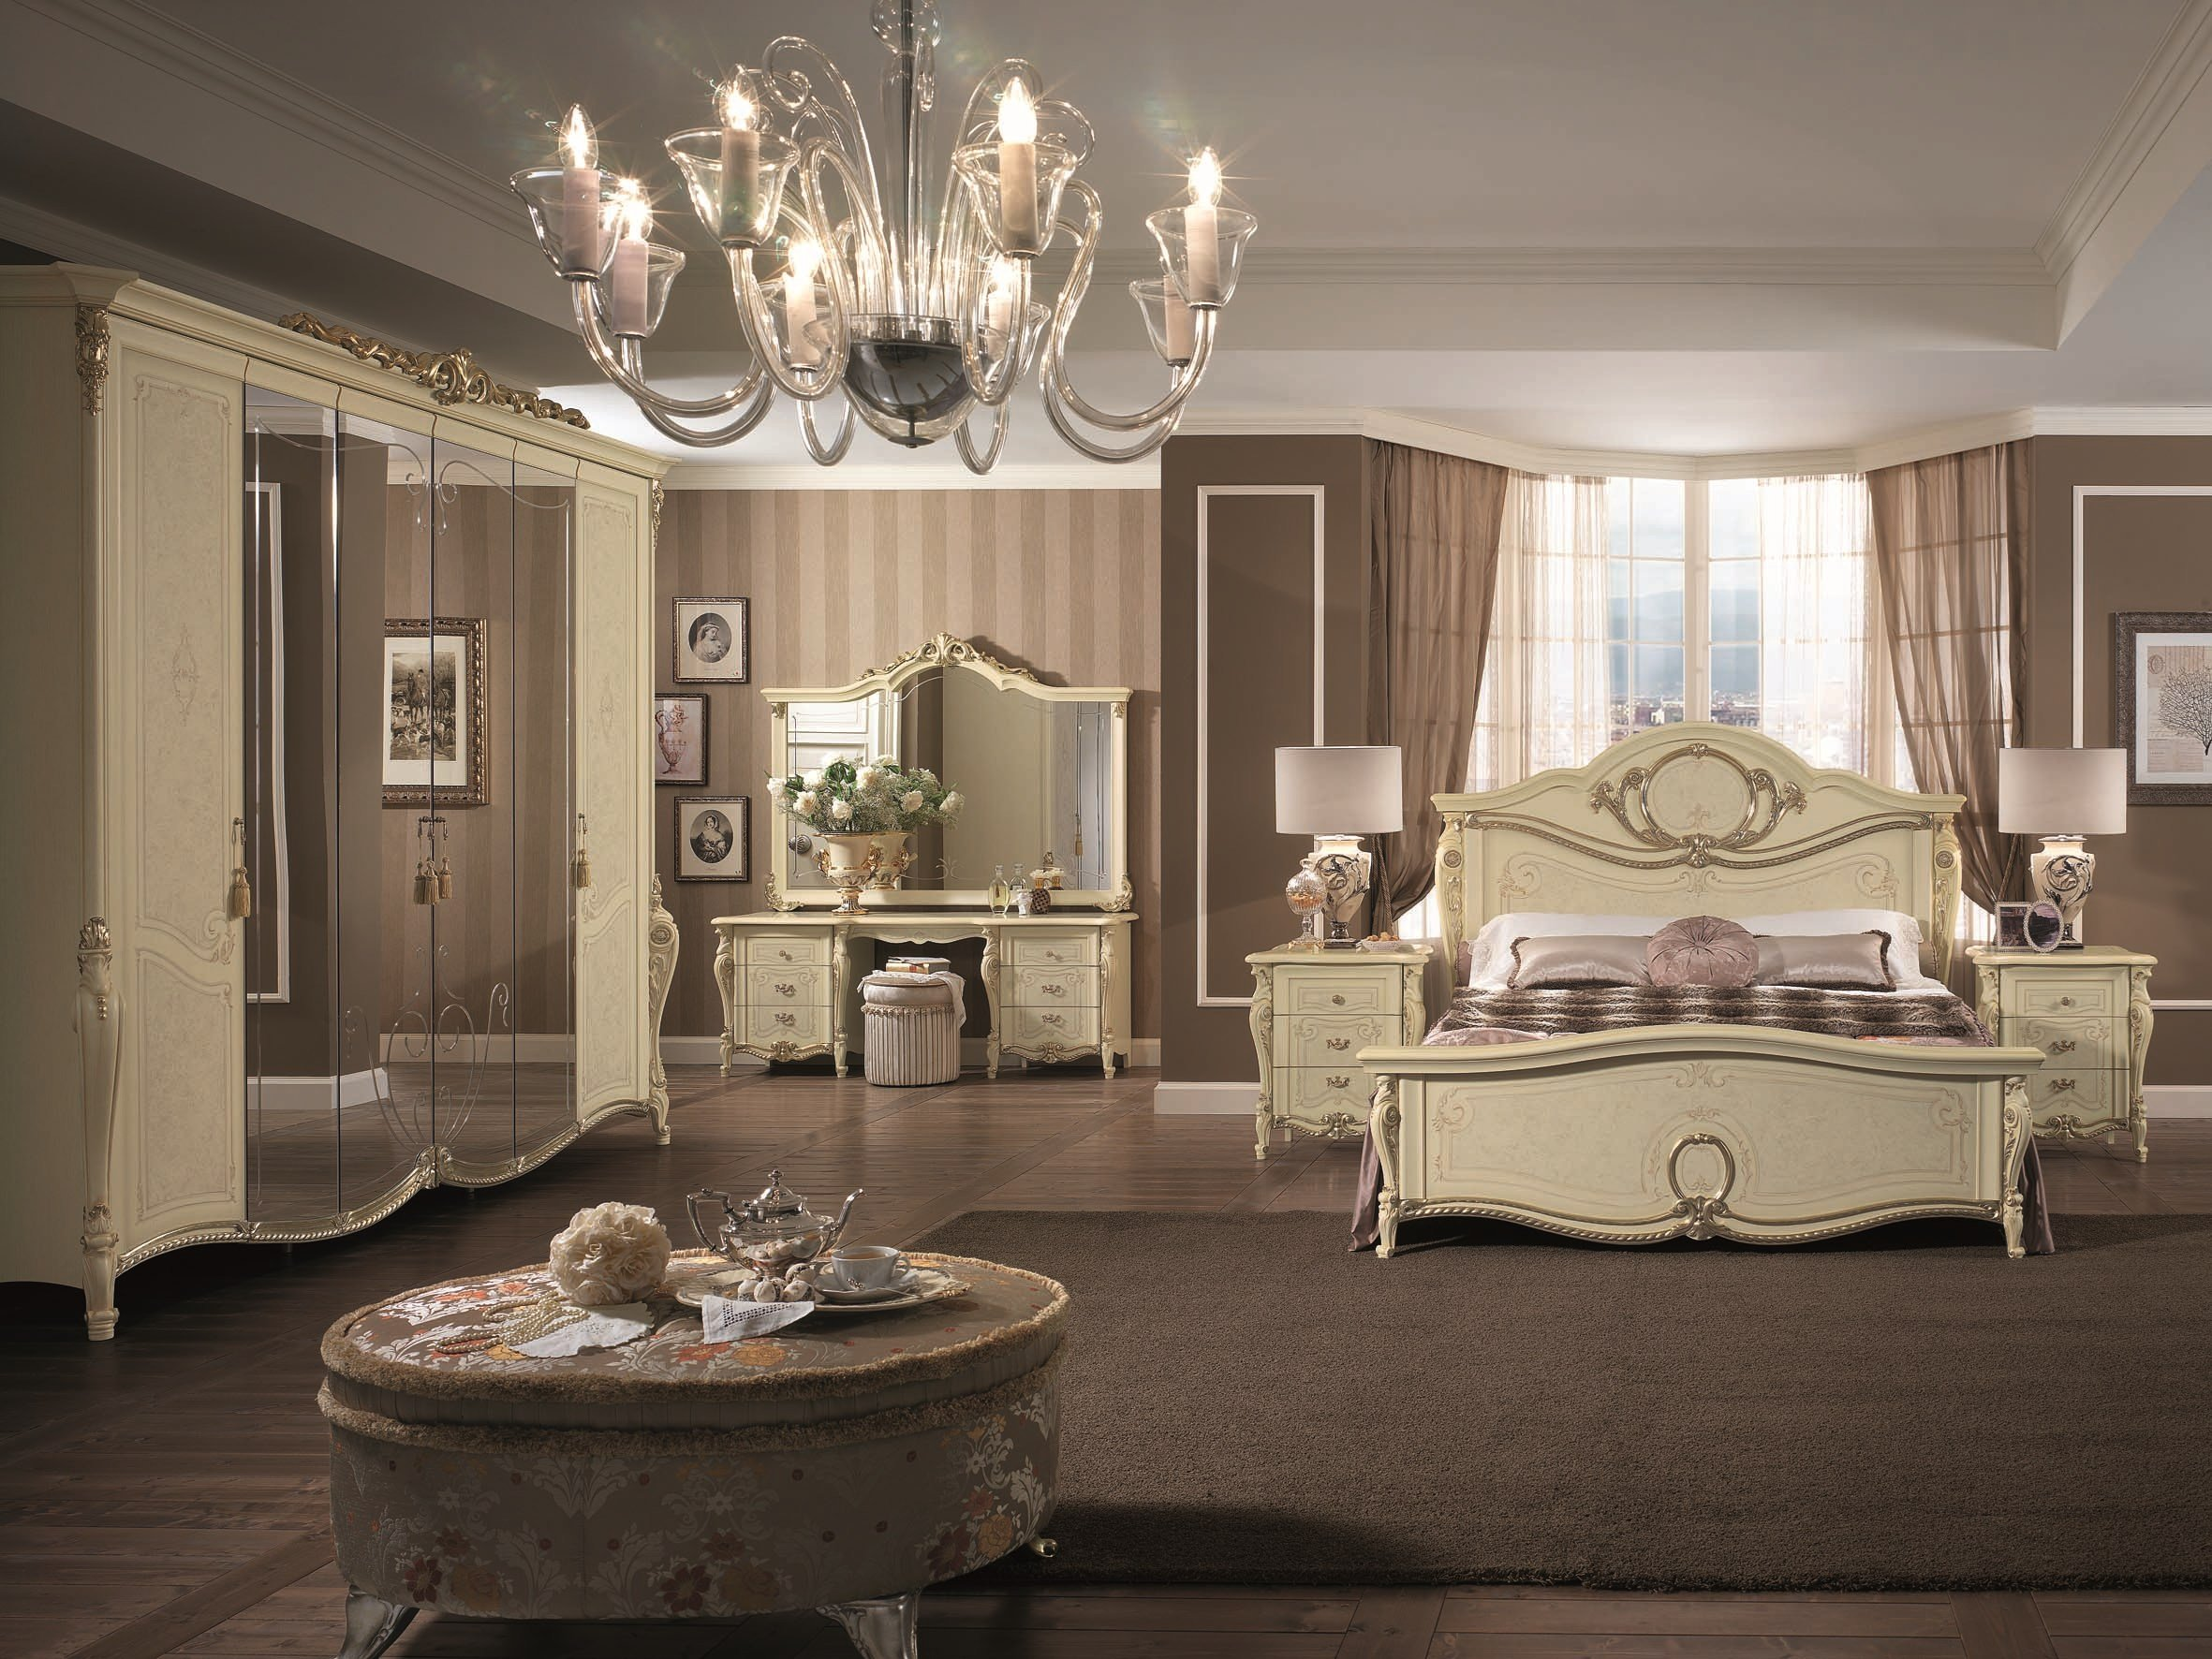 Tiziano bedroom set by arredoclassic for Style romantique deco